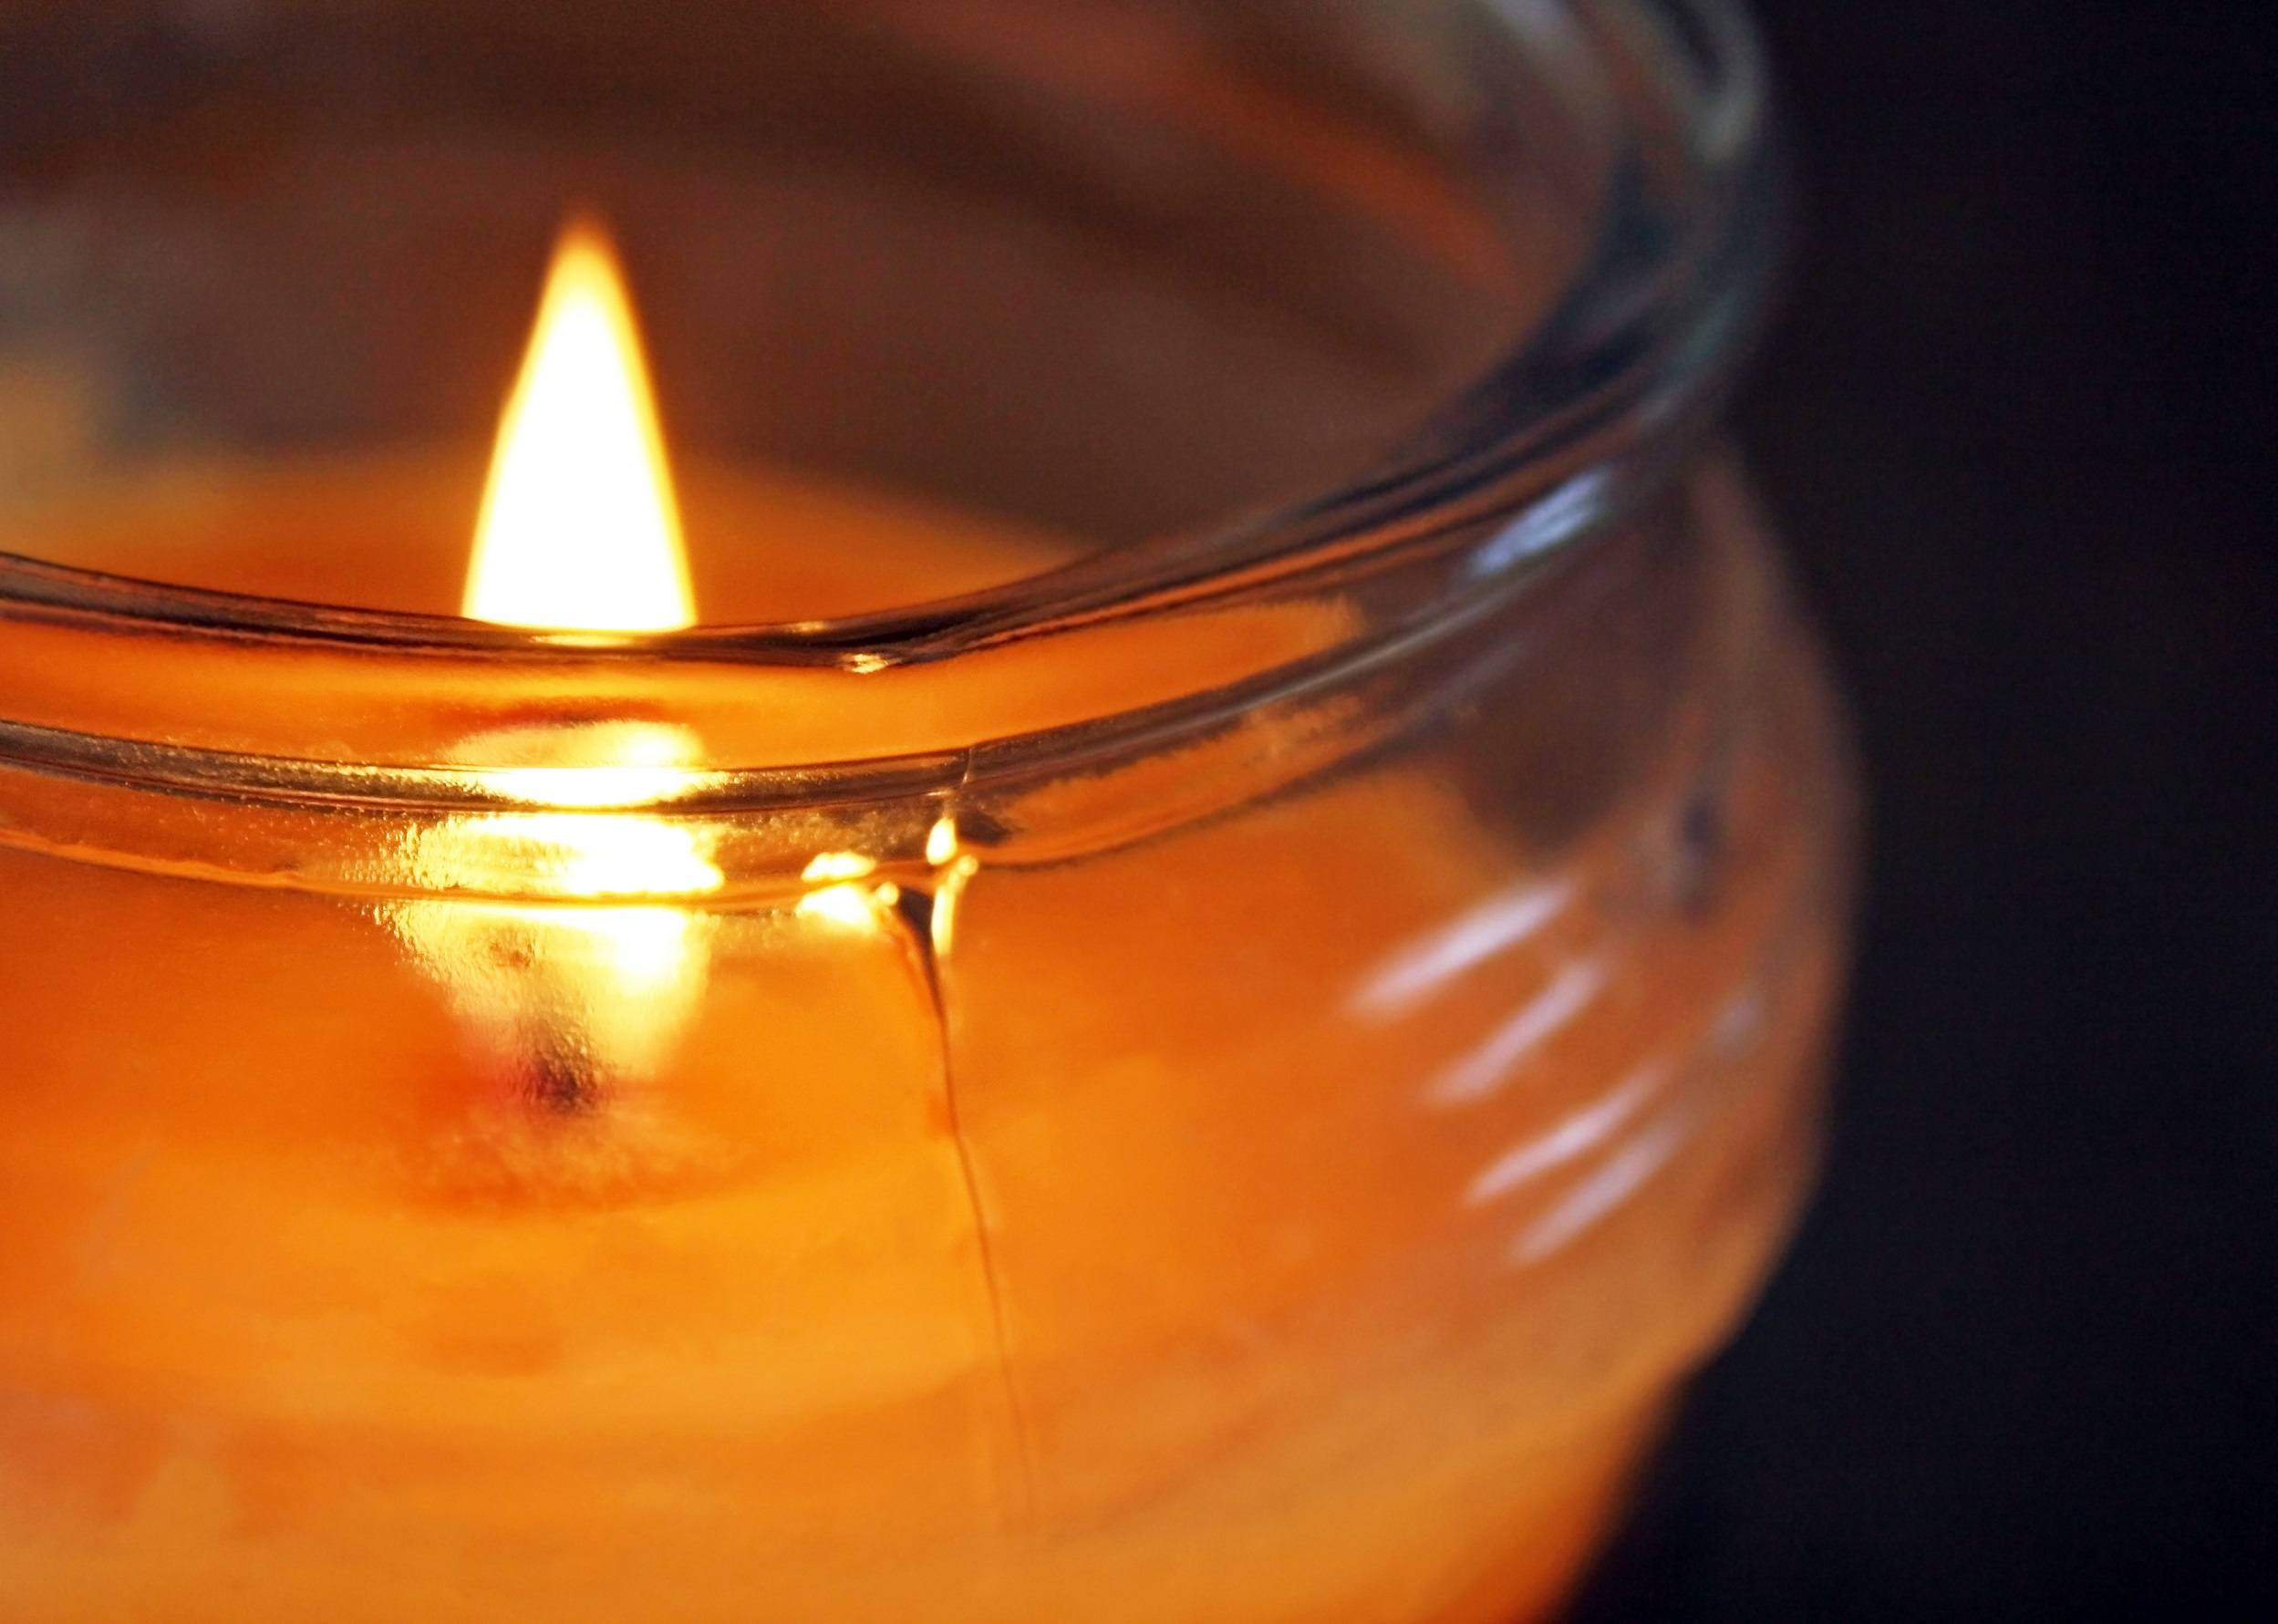 Love Burning Candles? Here's What You Need to Do to Make